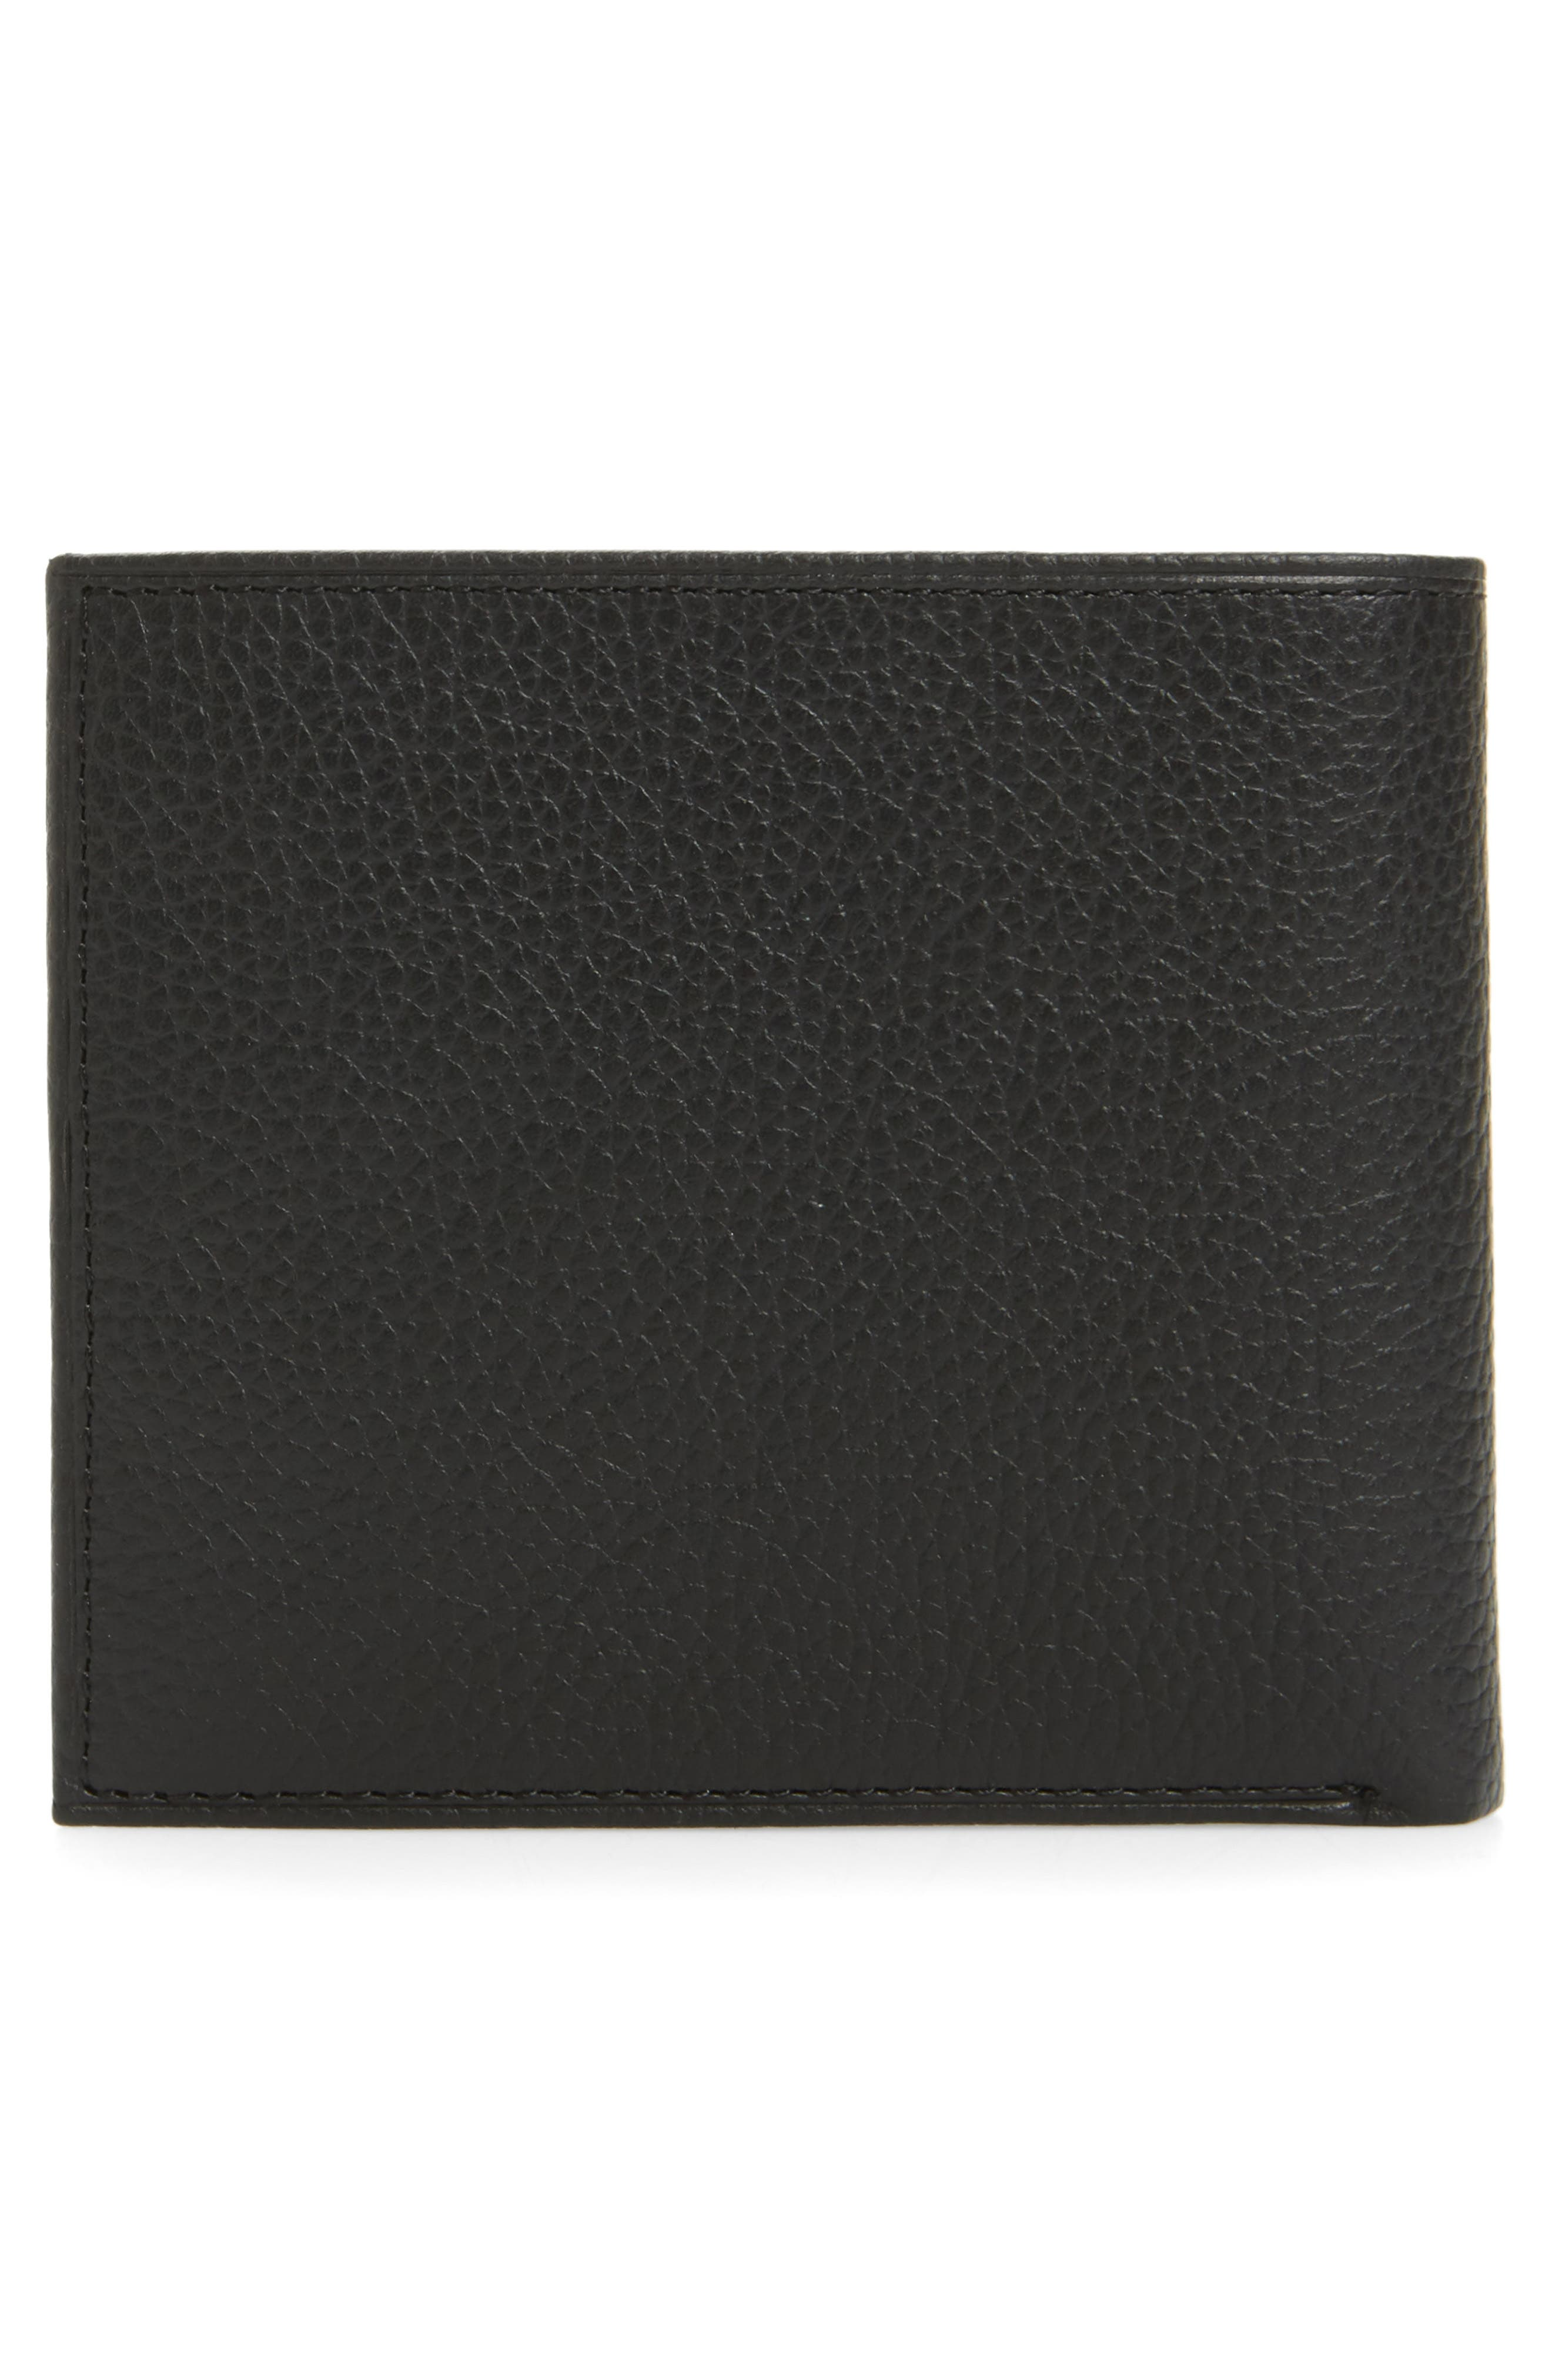 Leather Wallet,                             Alternate thumbnail 8, color,